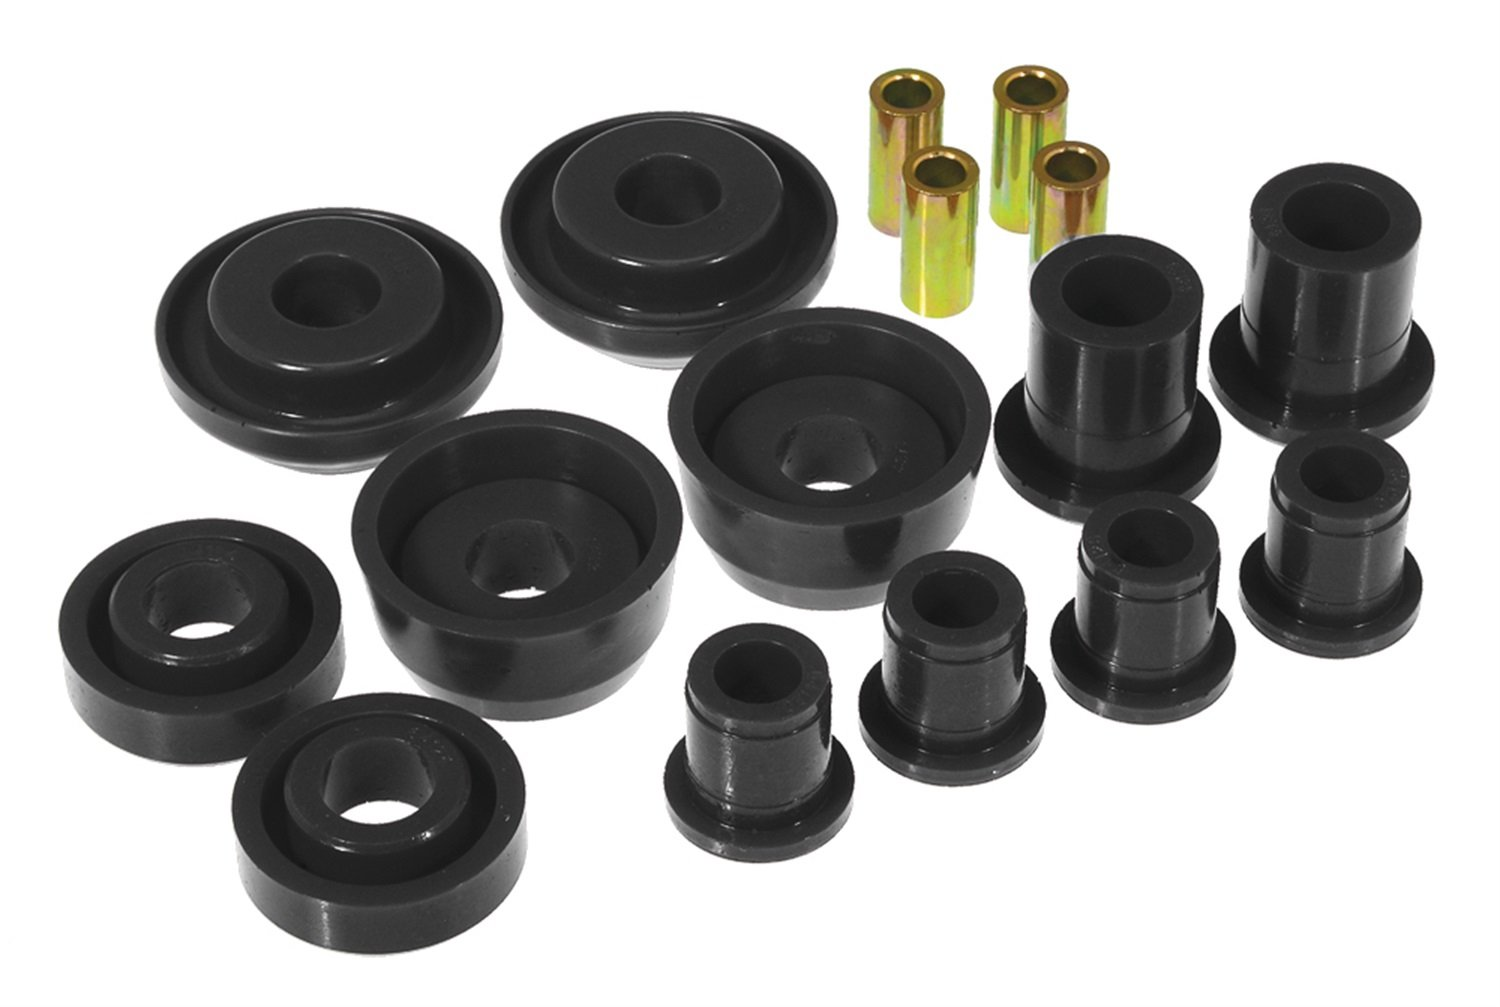 Prothane 7-227-BL Black Front Control Arm Bushing Kit